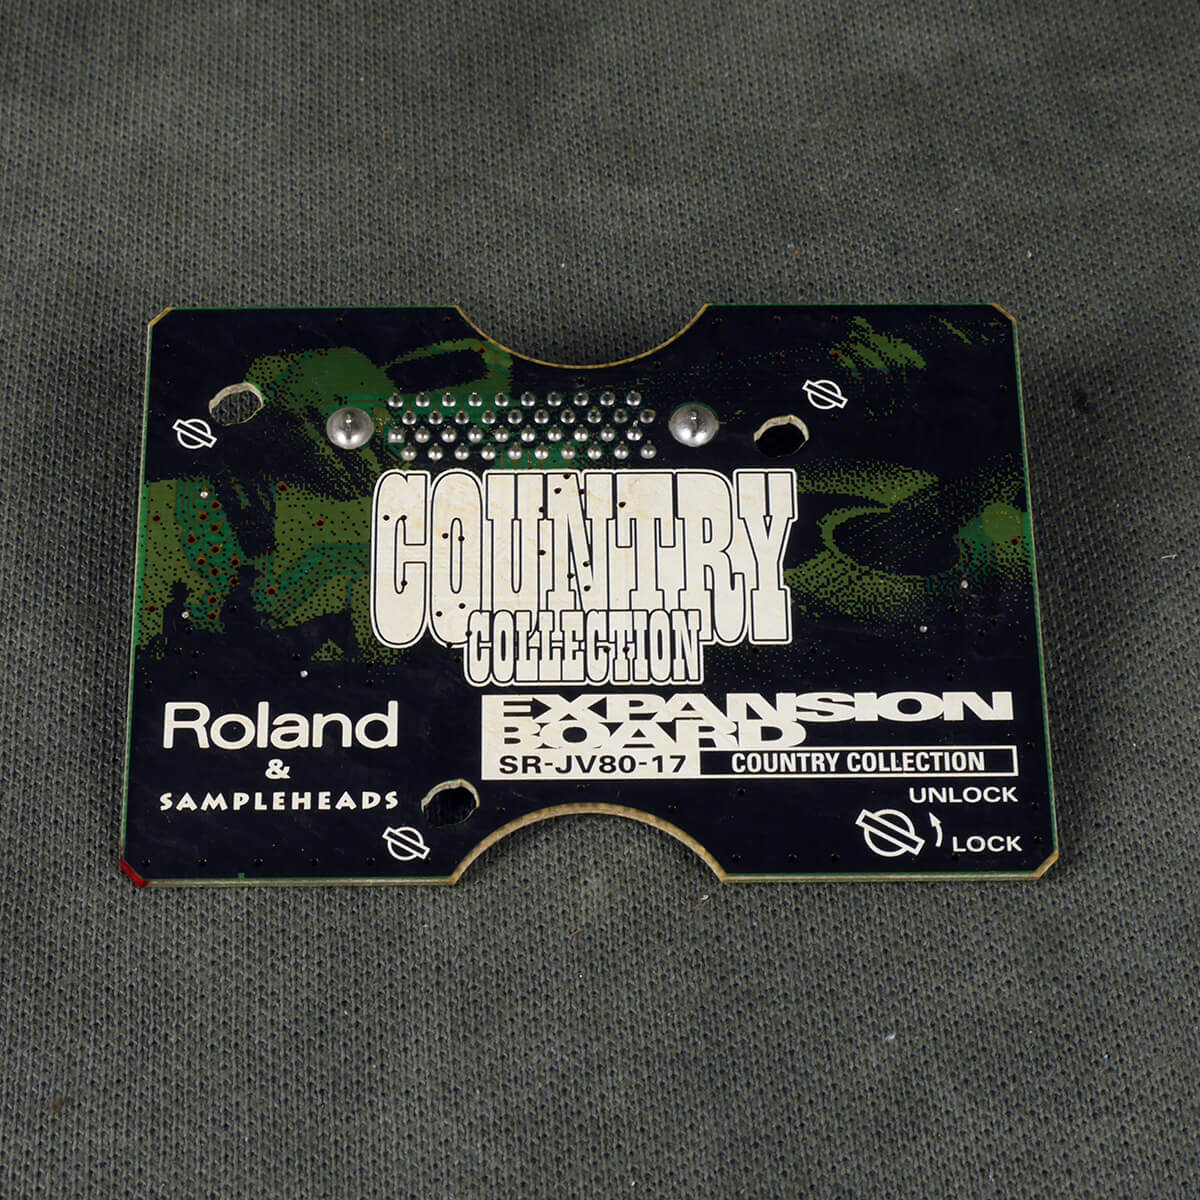 Roland SR-JV80 Expansion Board - 17 Country Collection - 2nd Hand